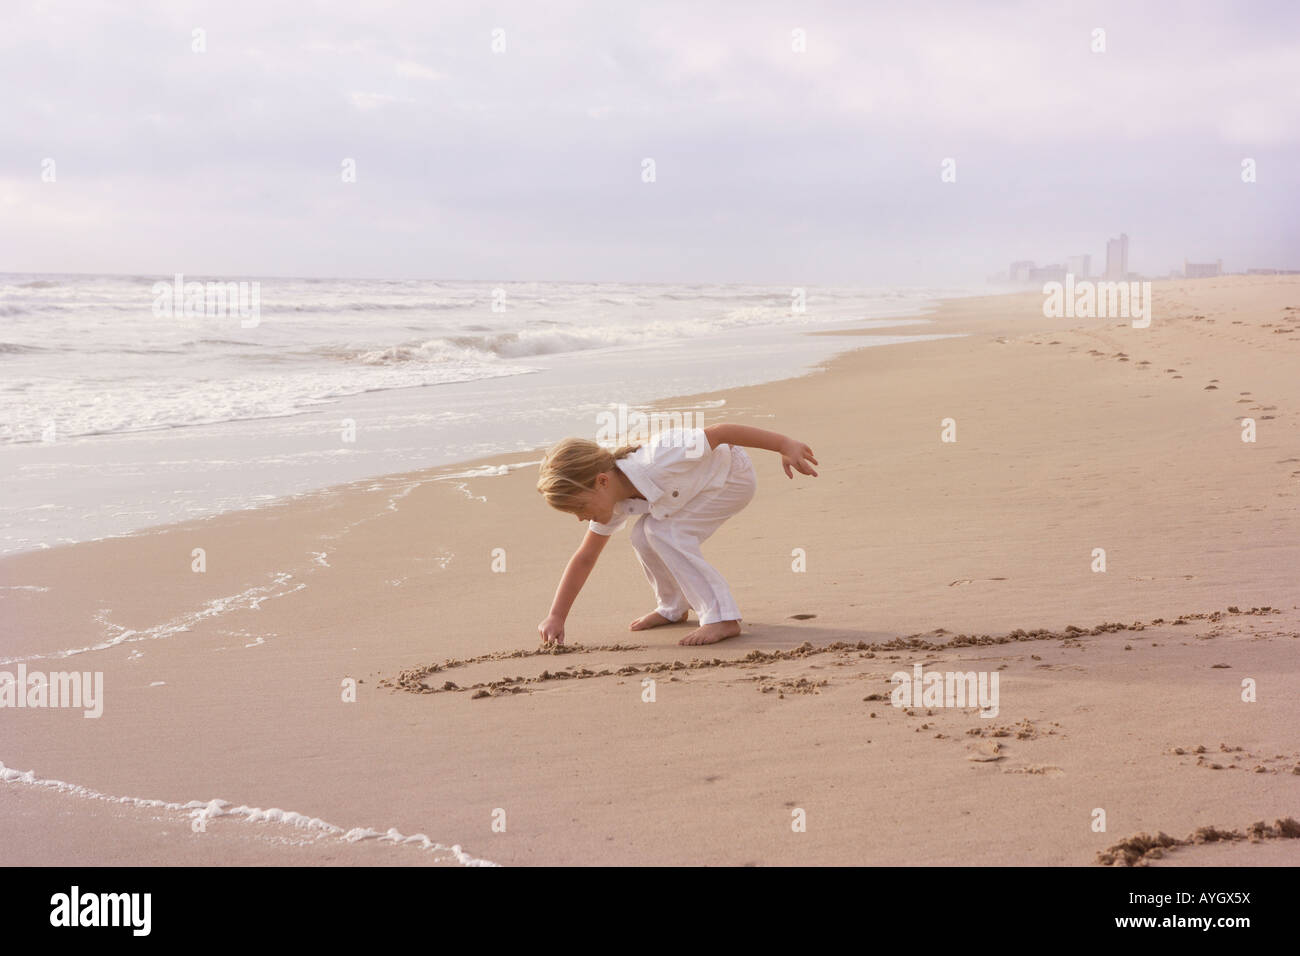 Girl drawing in sand - Stock Image